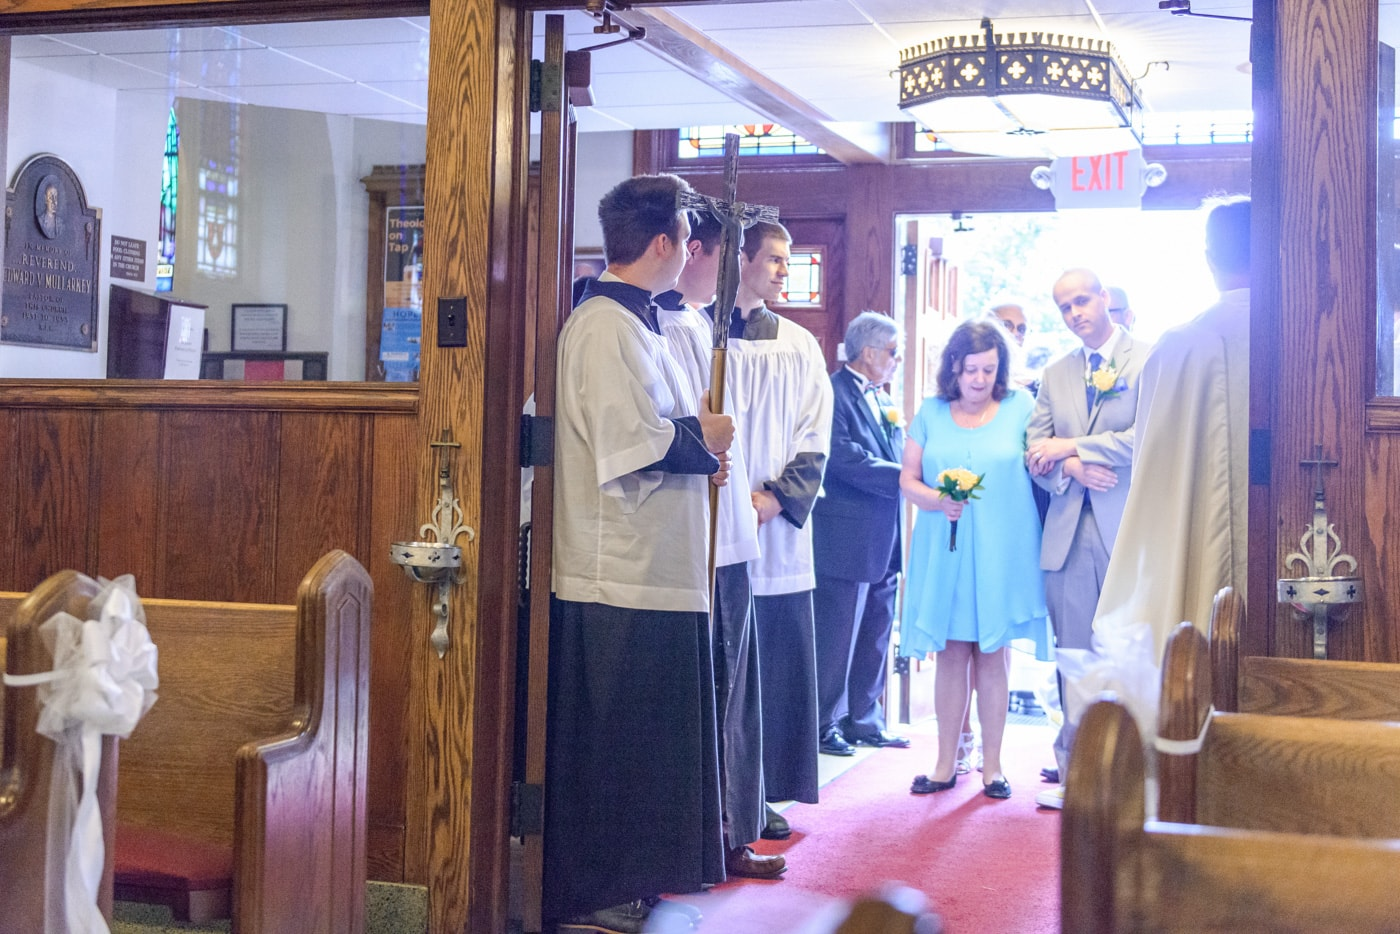 The wedding procession begins at a ceremony at St James Catholic Church in Falls Church, Virginia